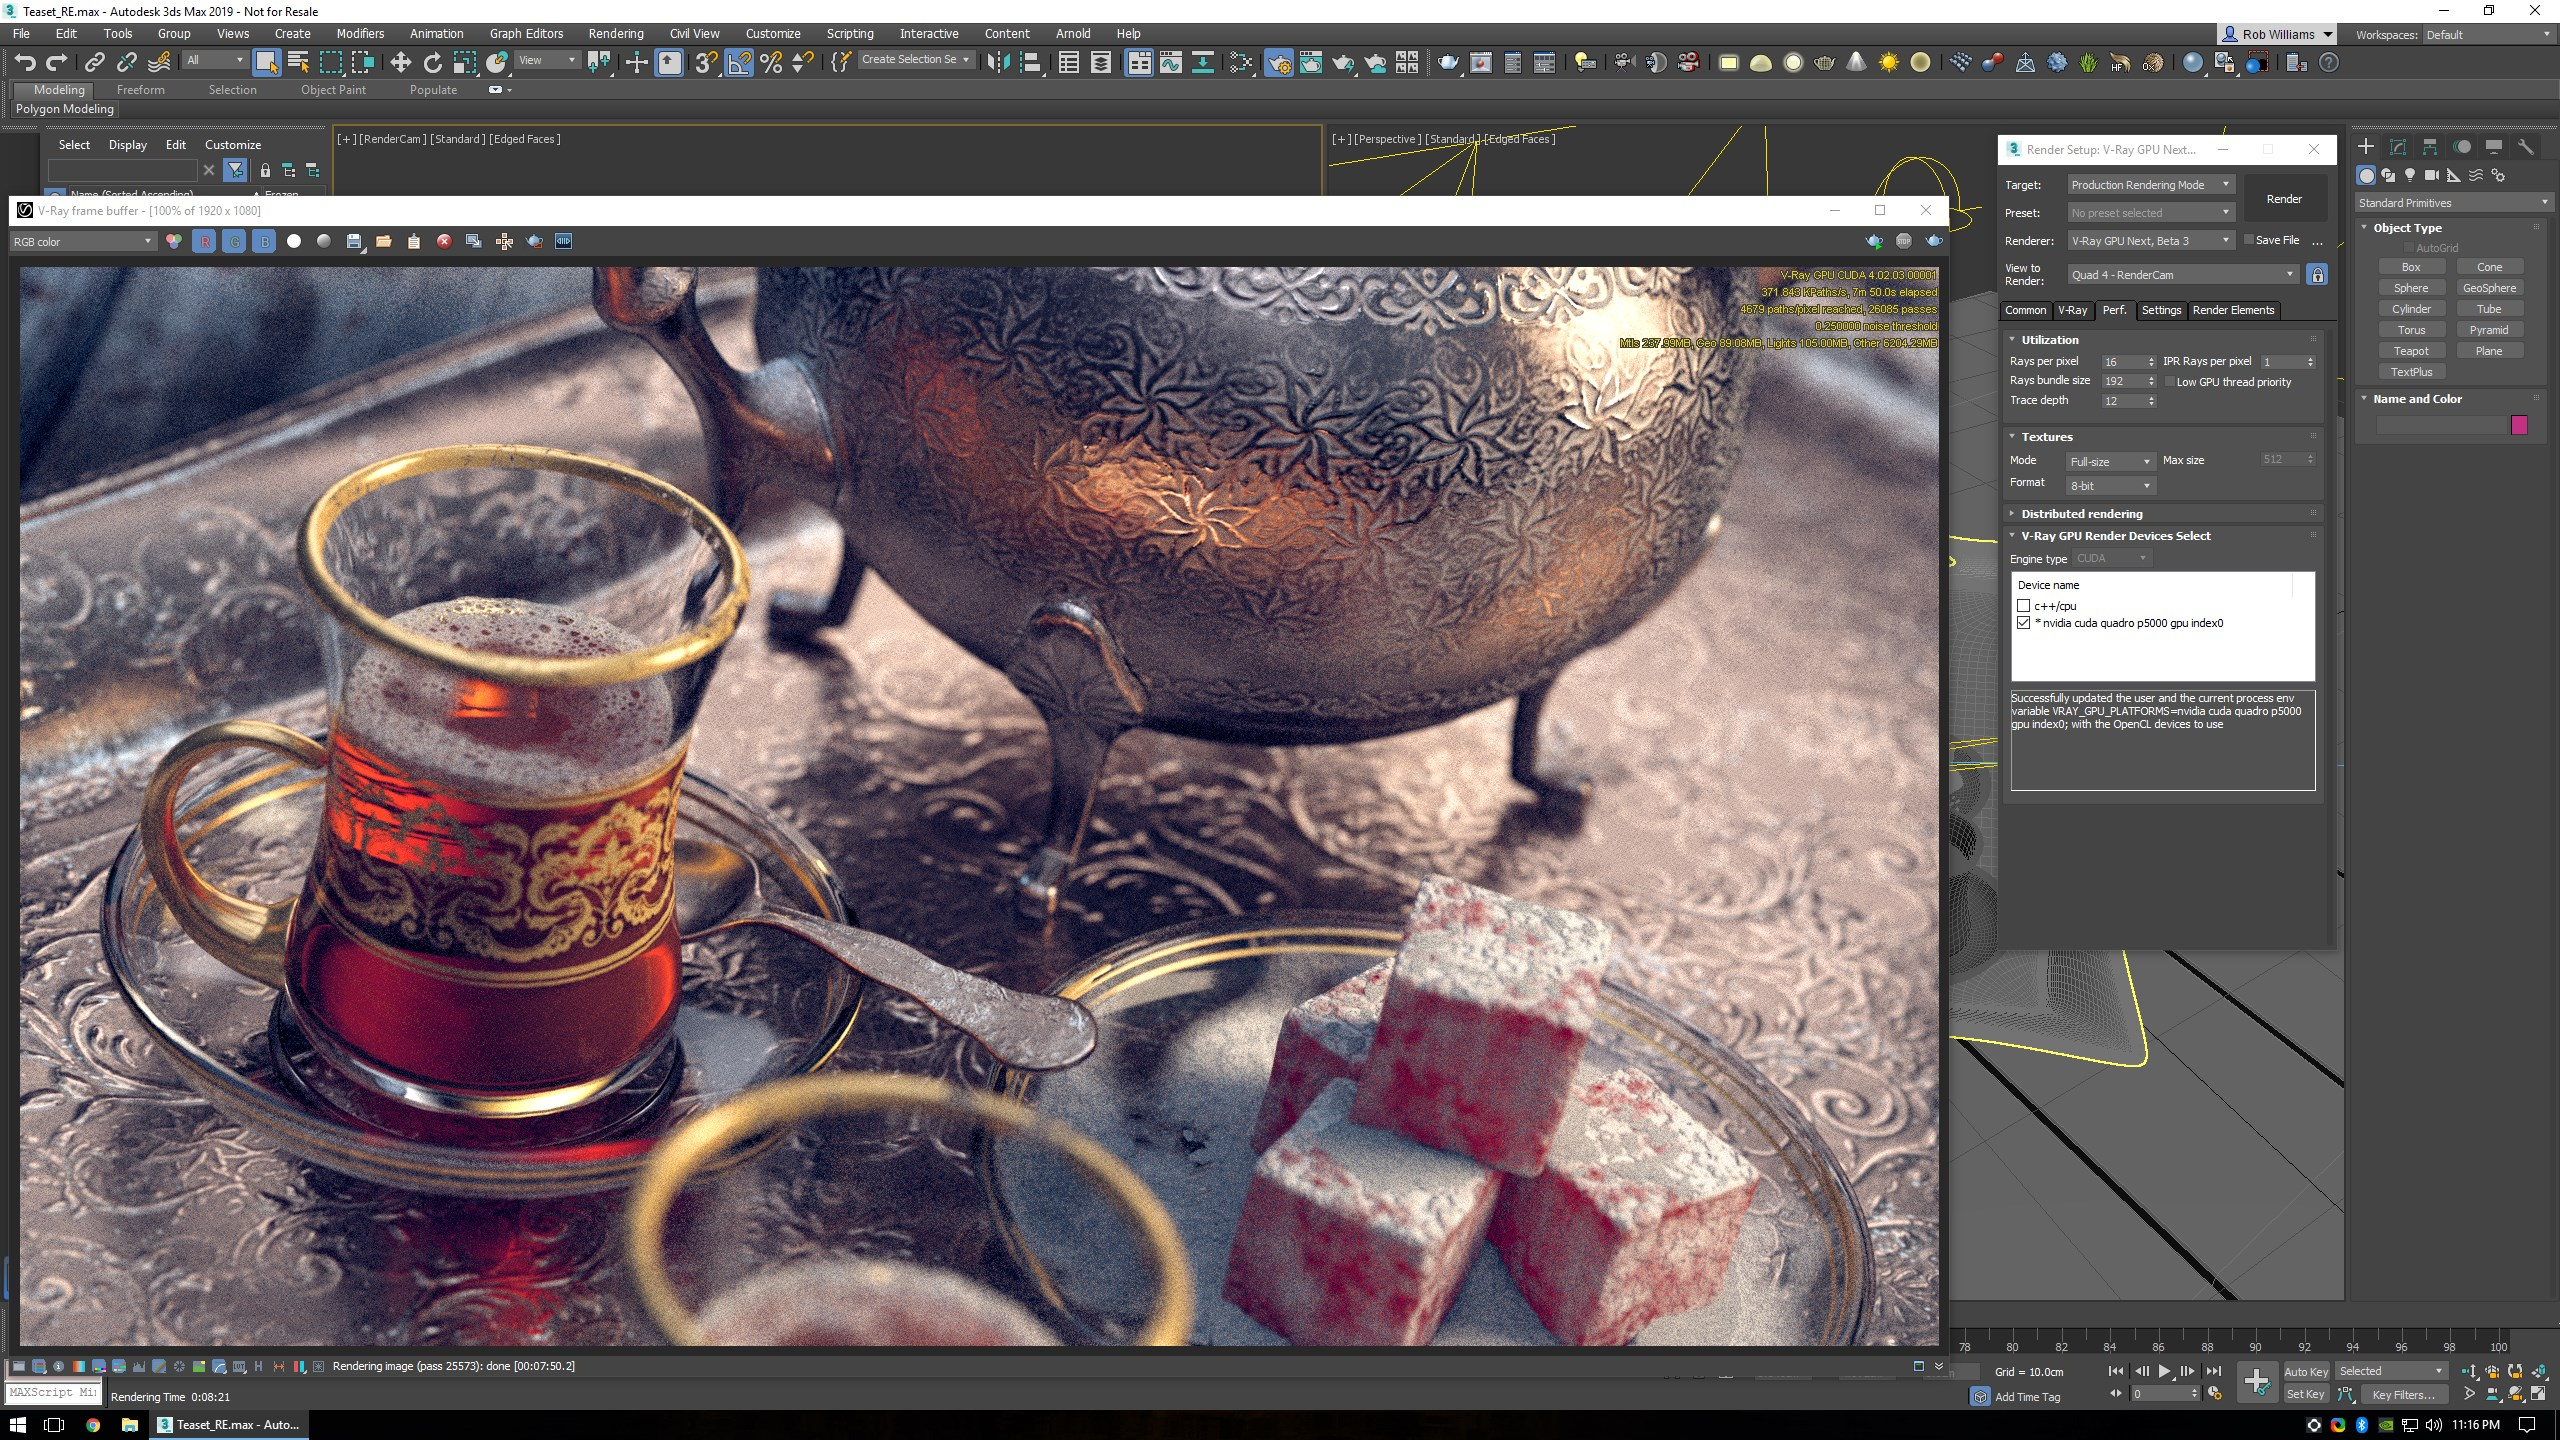 Chaos Group V-Ray 4 in Autodesk 3ds Max 2019